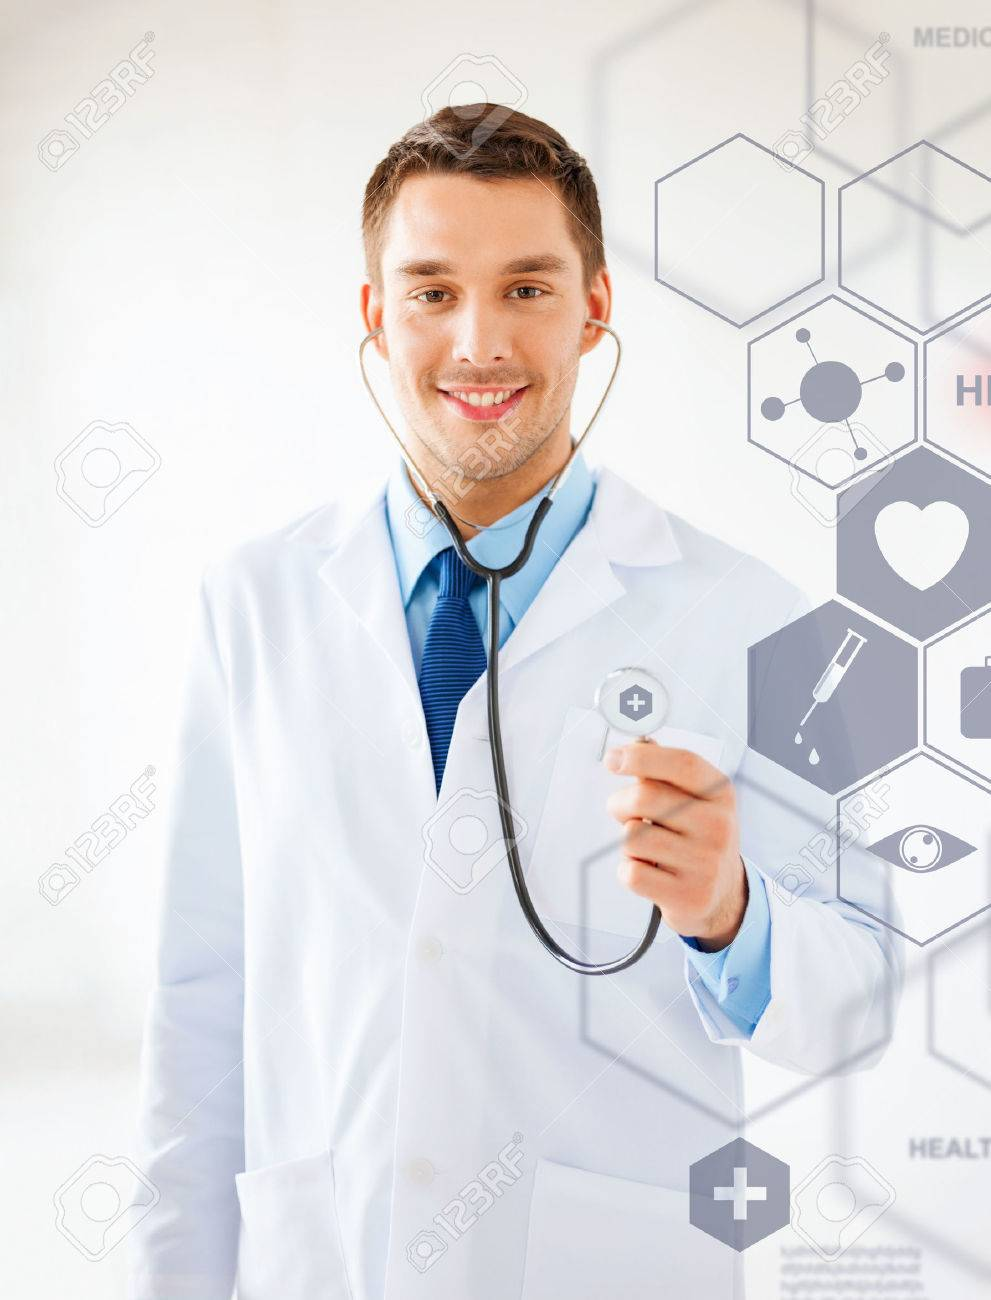 healthcare, medical and future technology concept - male doctor with stethoscope and virtual screen Stock Photo - 22184113